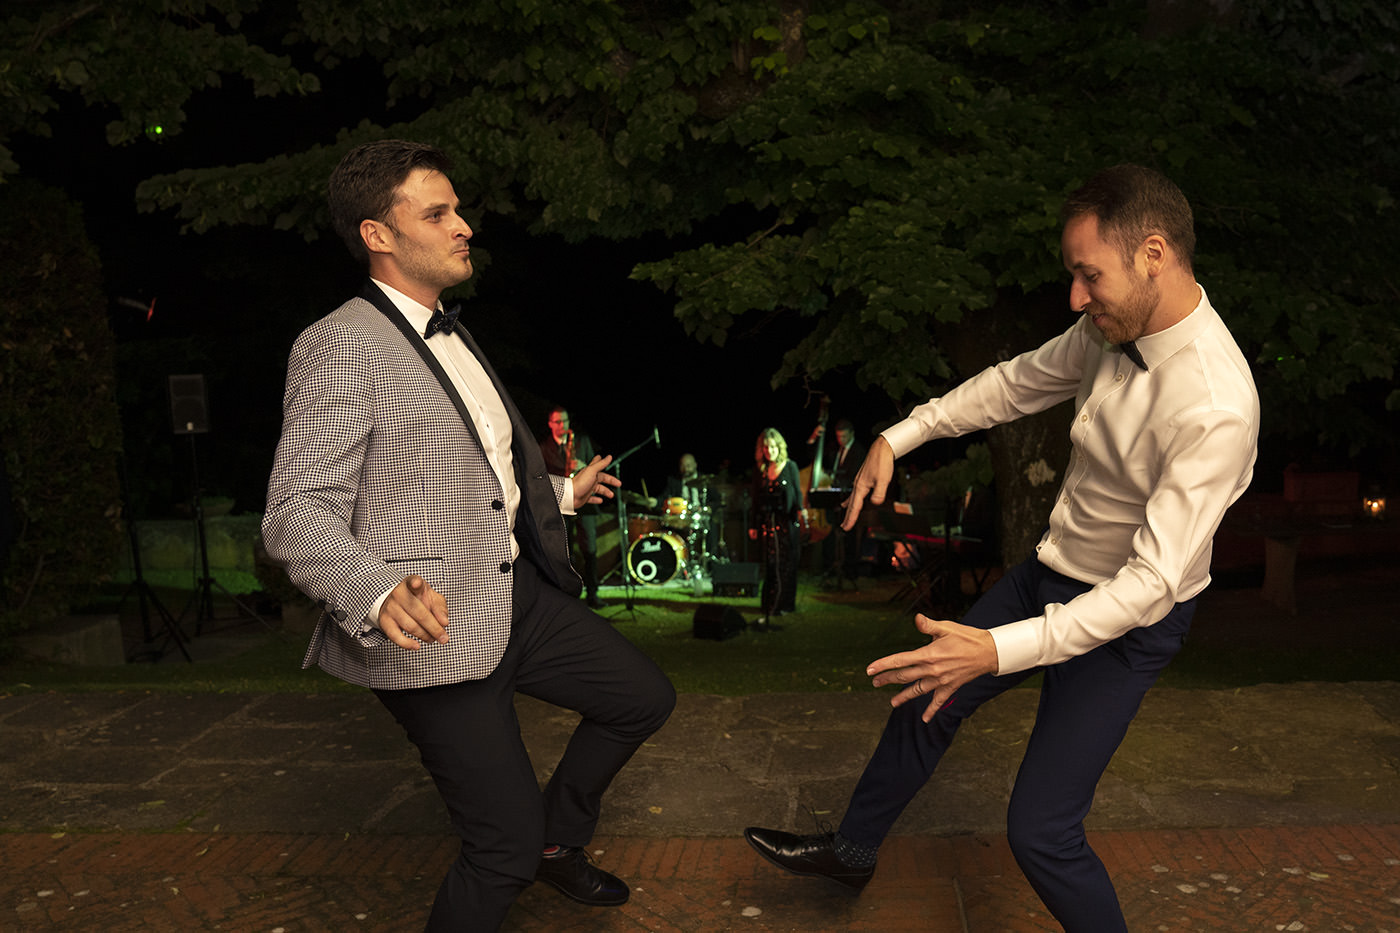 Duccio Argentini: Same-Sex Wedding Photographer. Couple dancing together